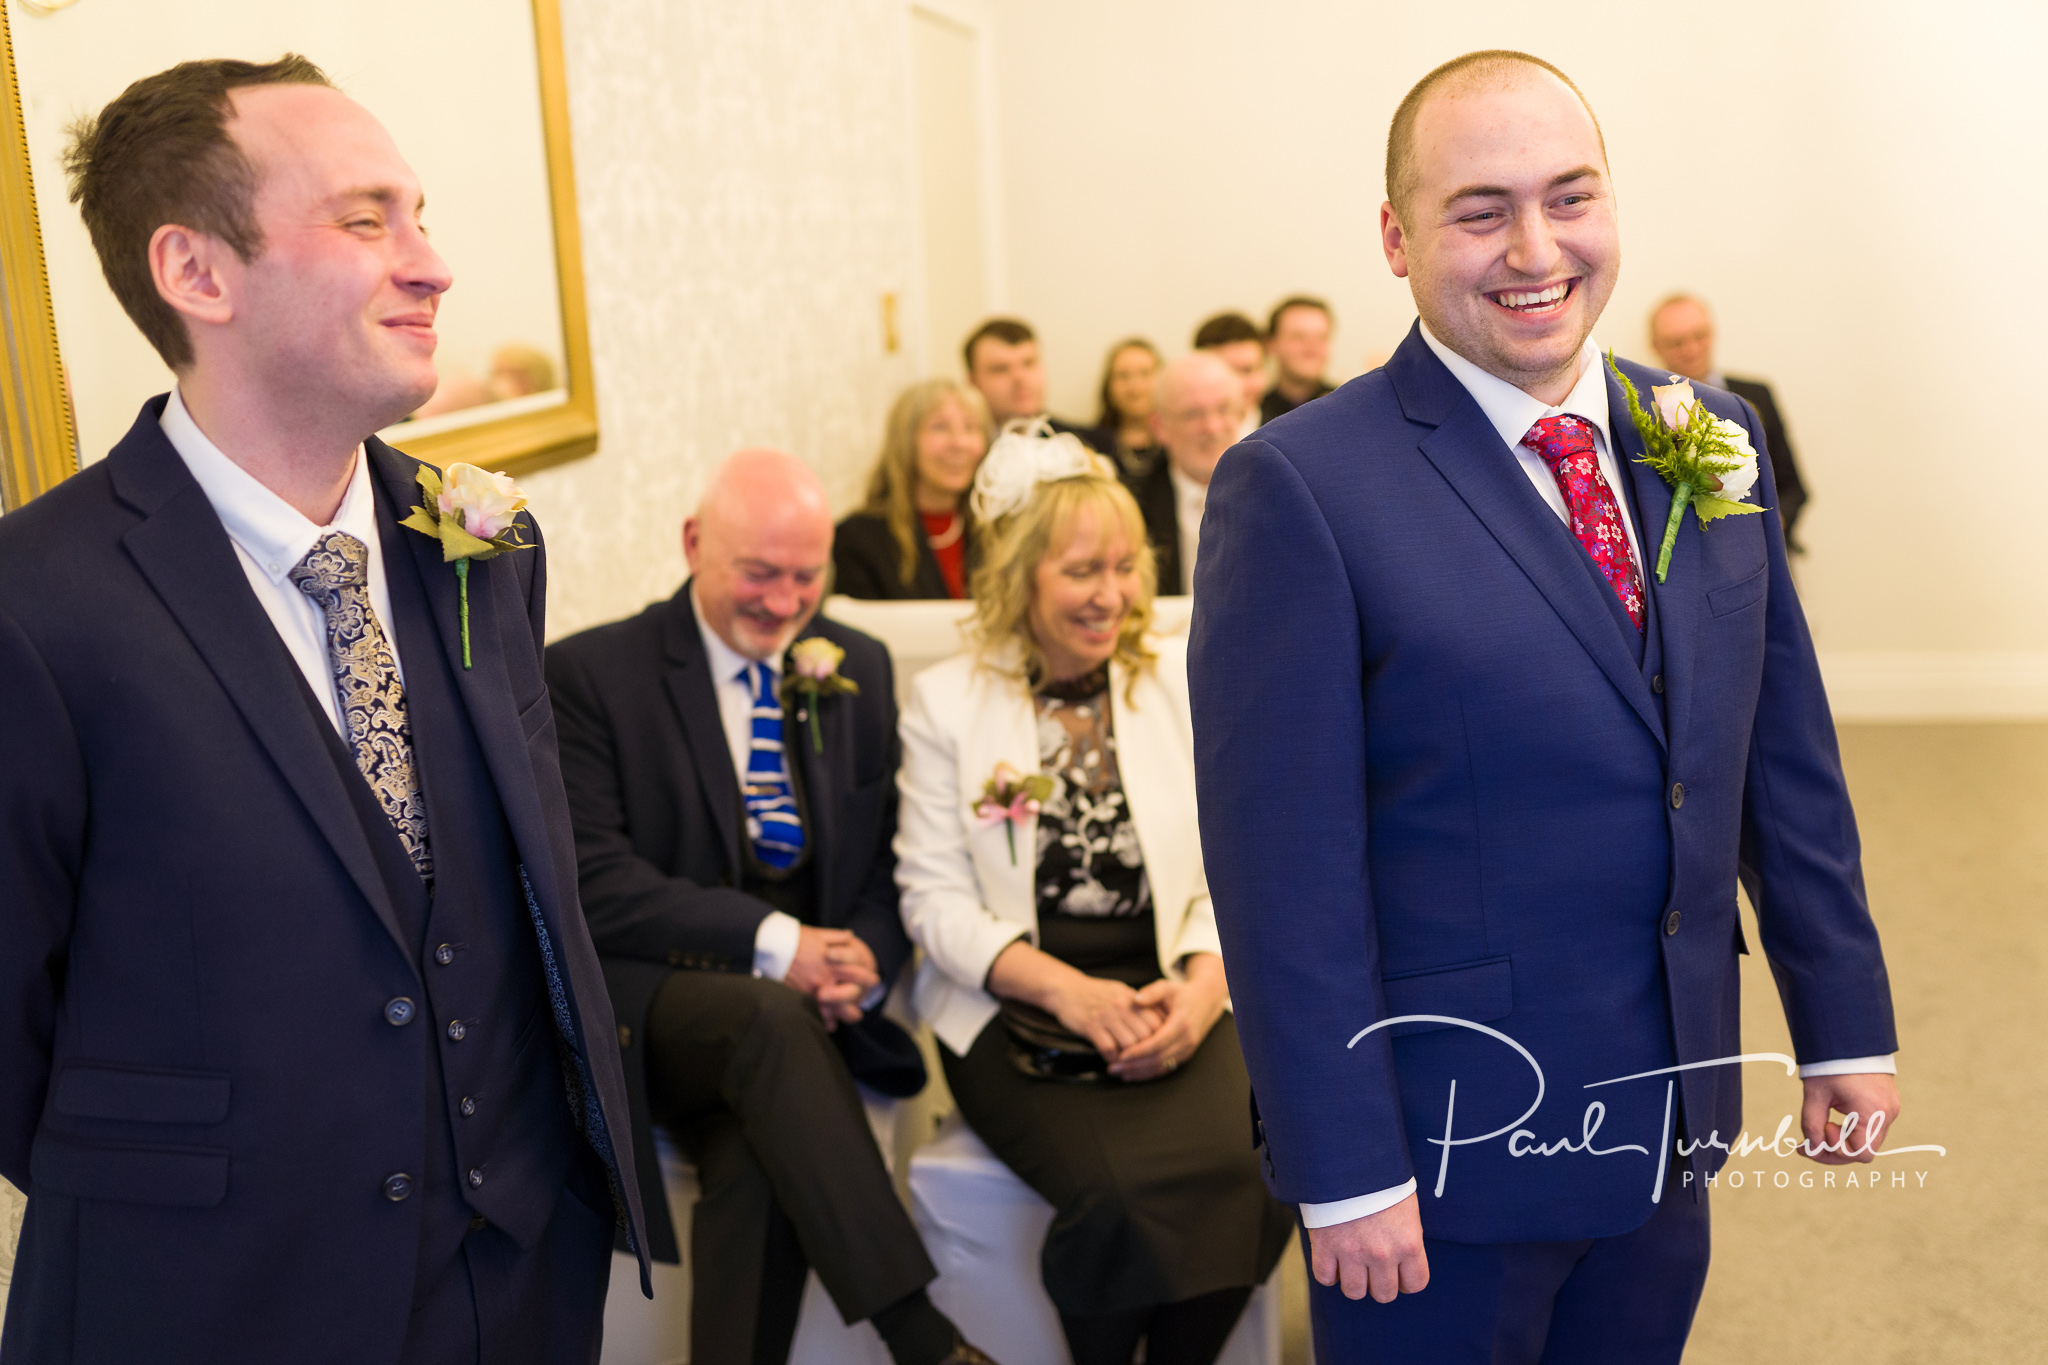 wedding-photographer-pontefract-yorkshire-laura-keanu-023.jpg